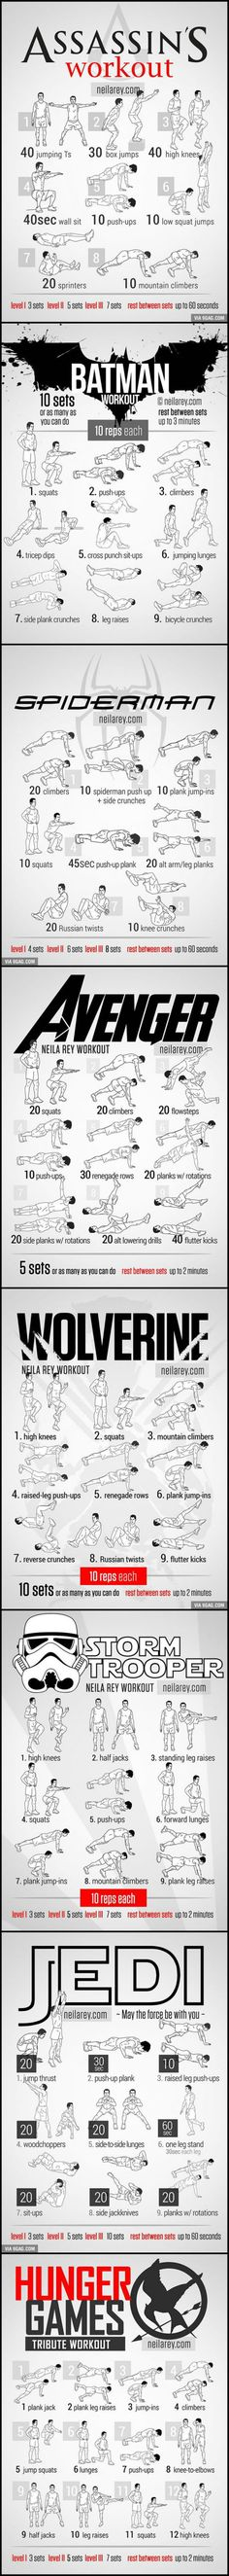 Workout for Assassin, Batman, Spiderman, Avenger, Wolverine...